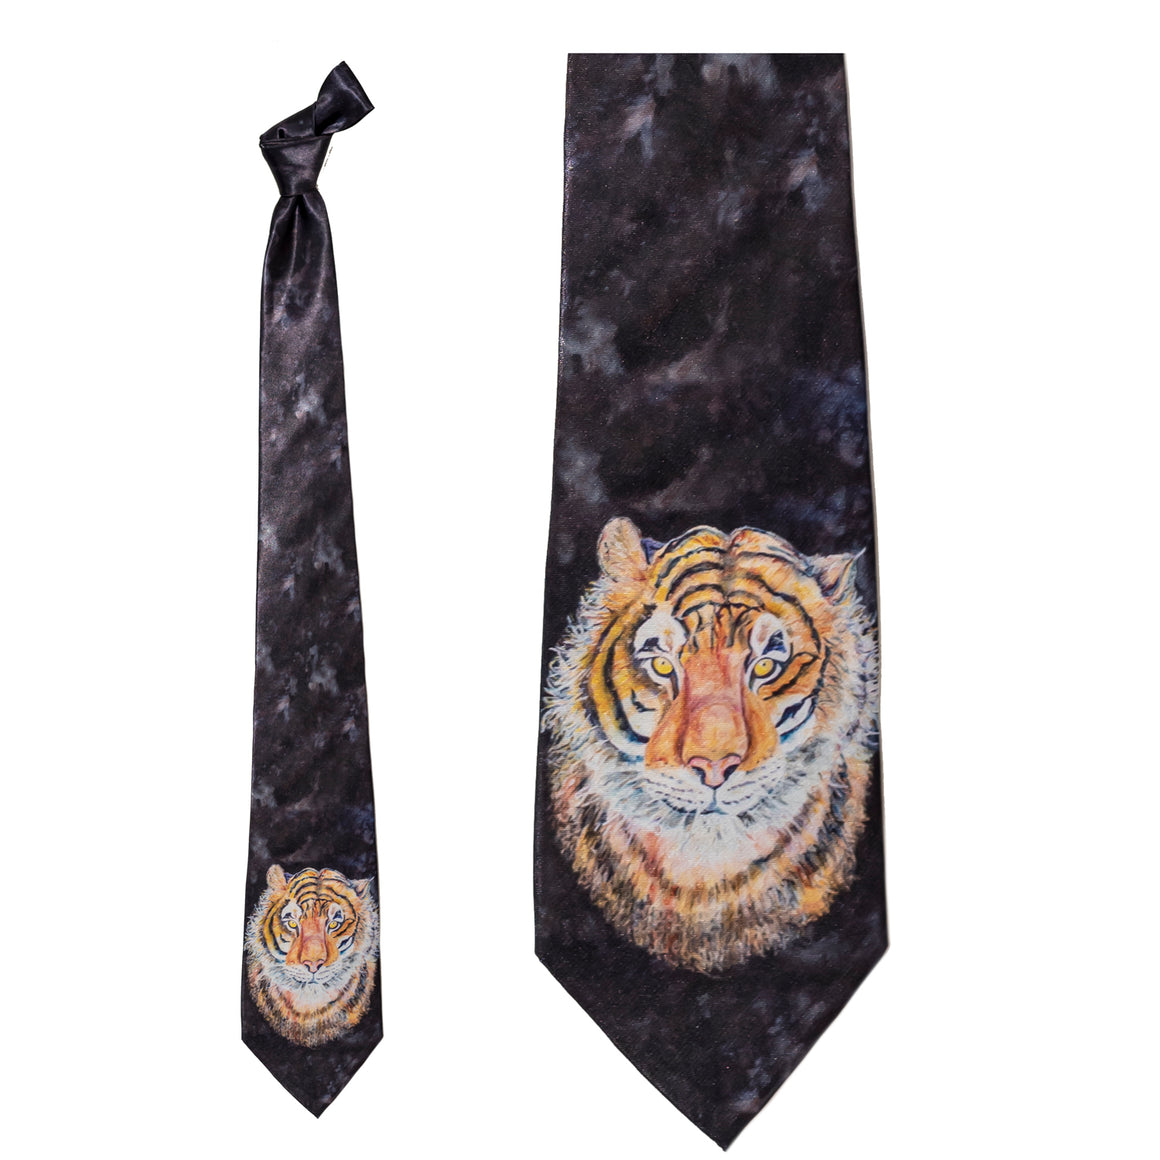 Home Run (Tiger) Necktie